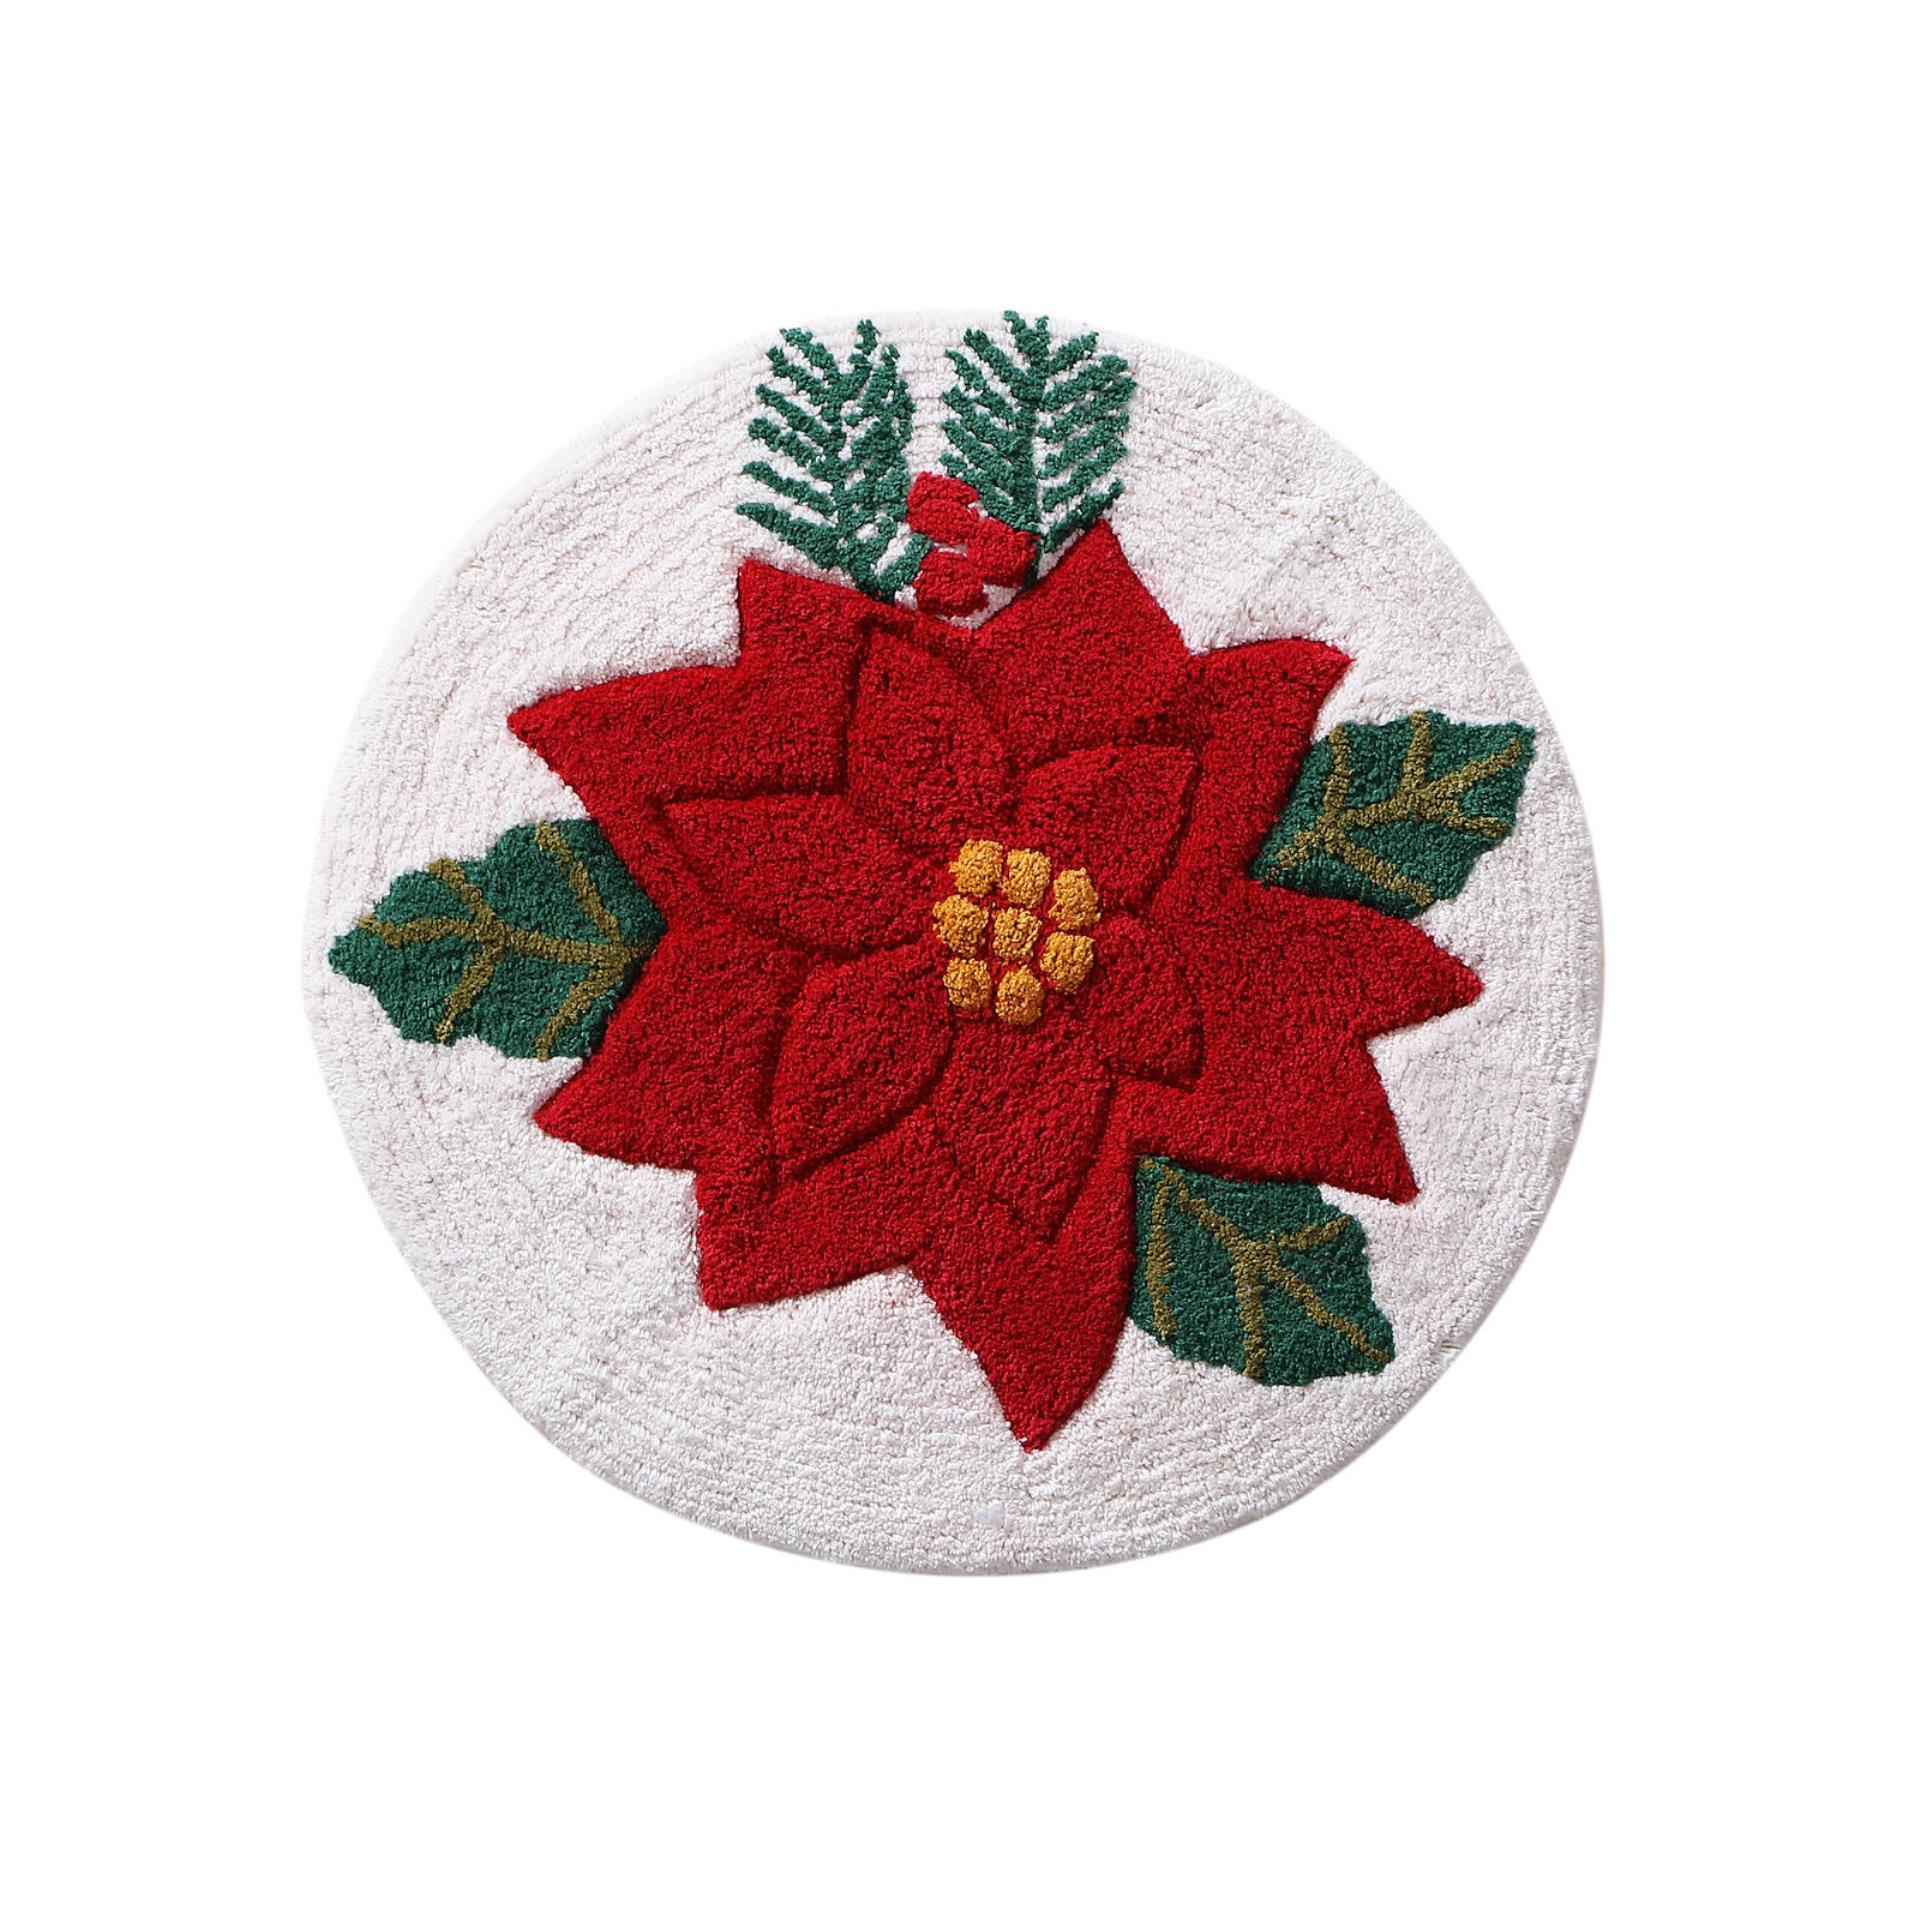 Round Rug Kmart Poinsettia 24 Quot Round Bath Rug Home Bed And Bath Bath